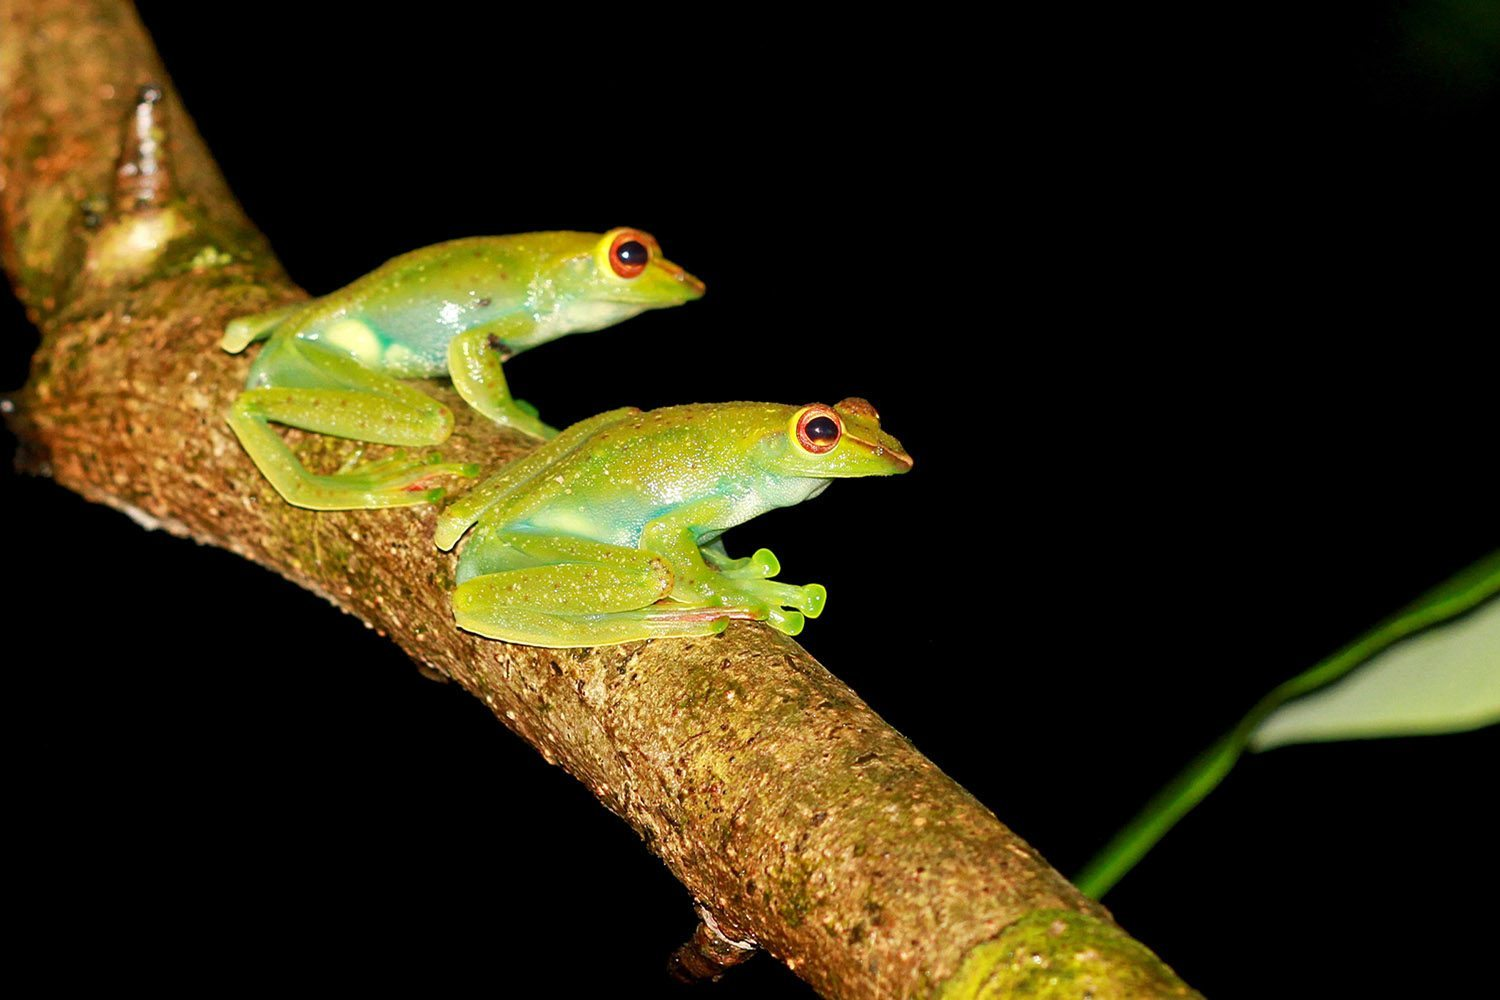 Tree frogs at night